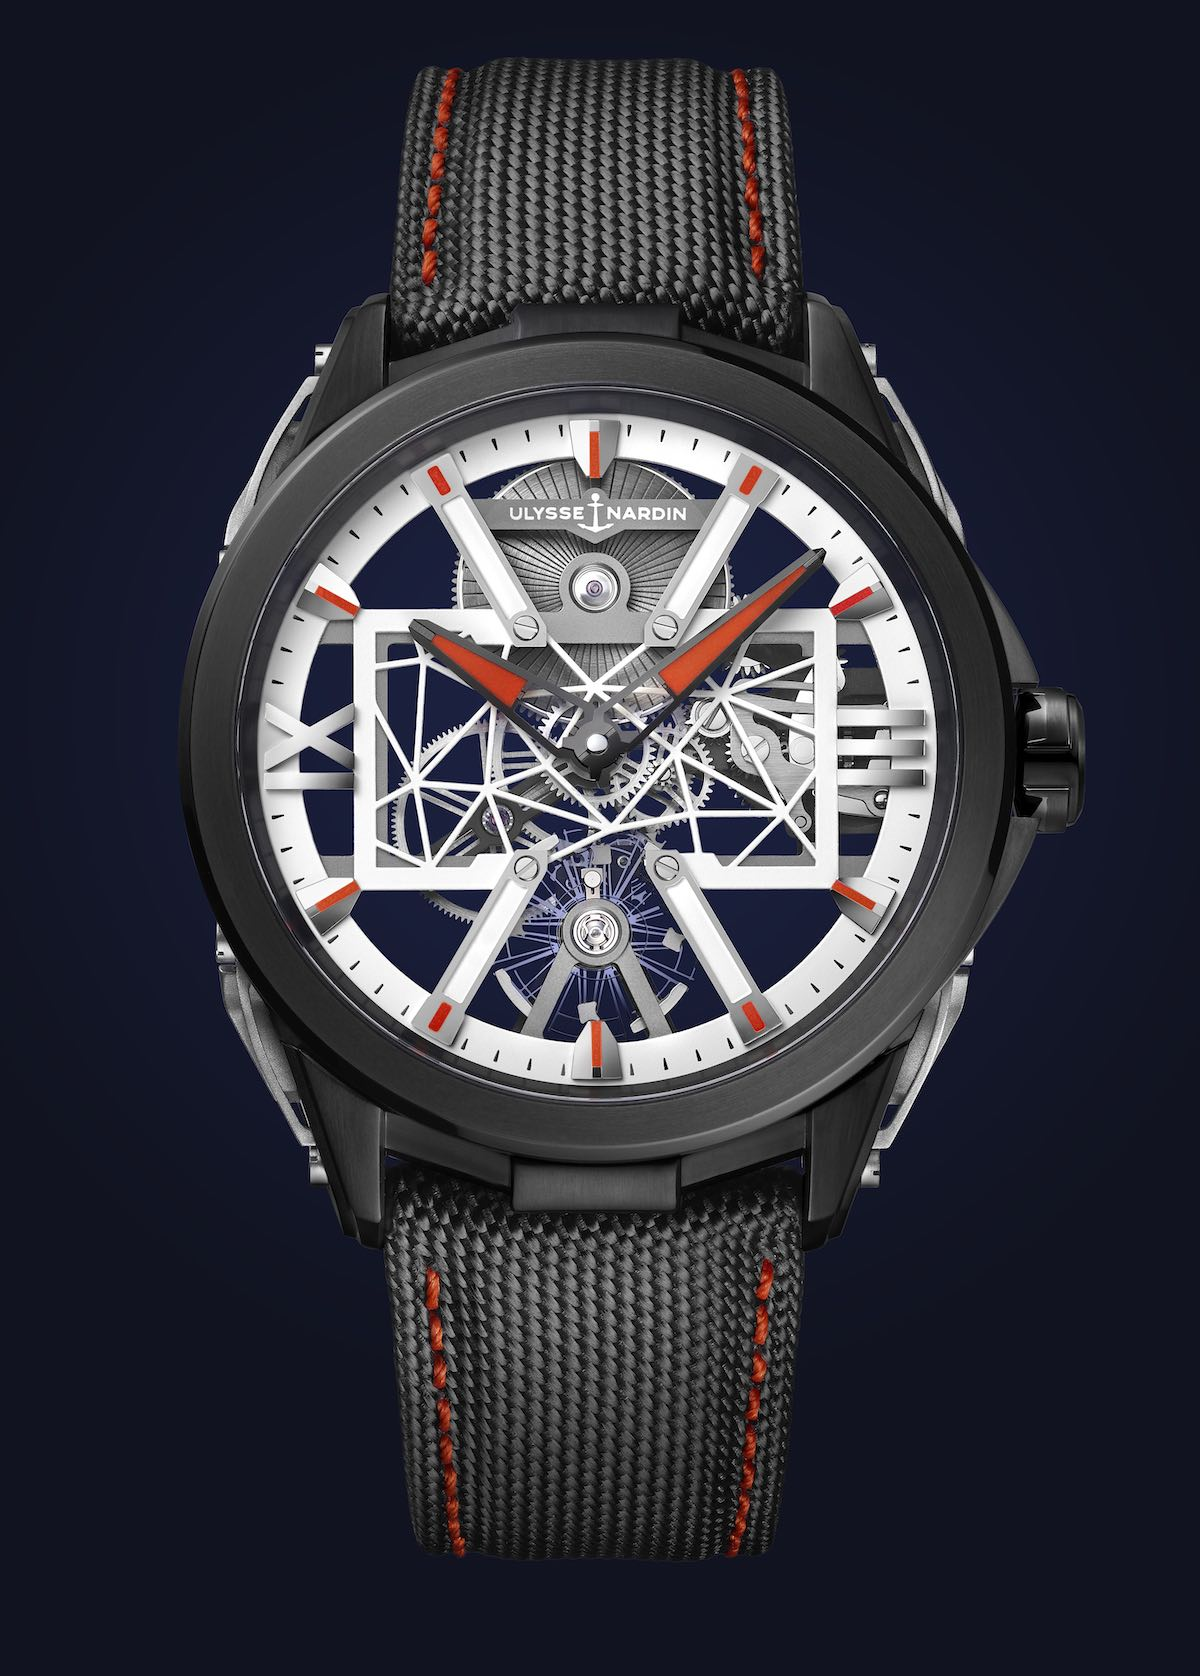 Only Watch 2019 Ulysse Nardin